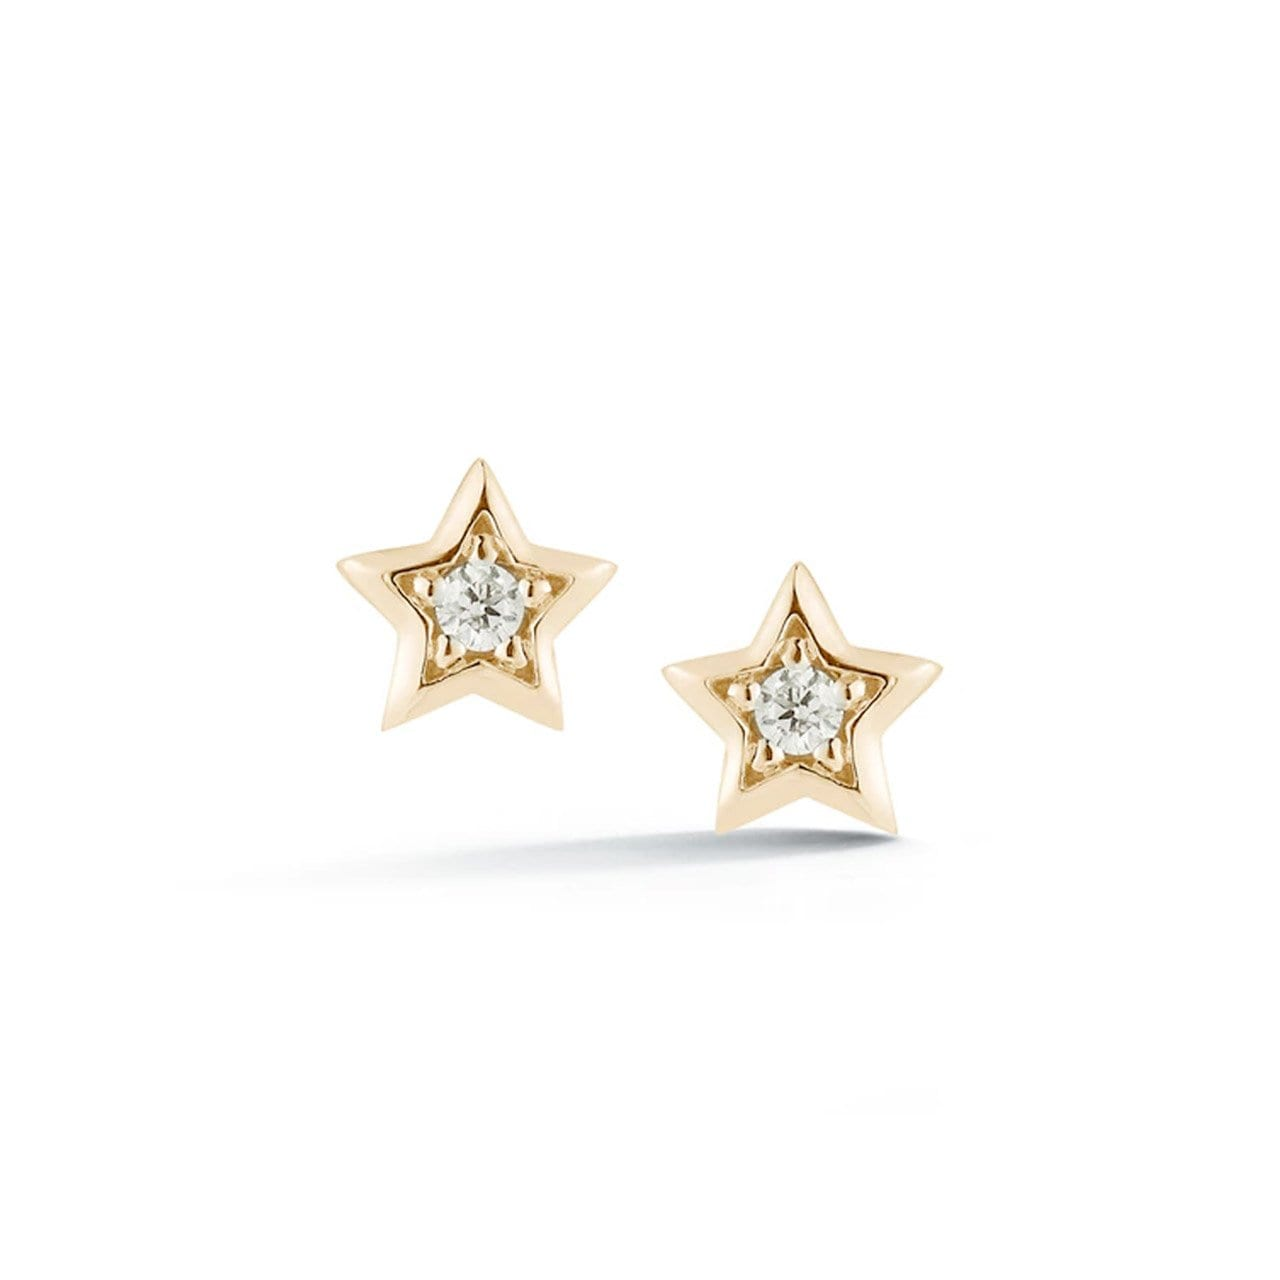 Vincents Fine Jewelry | Dana Rebecca | Julianne Himiko Mini Star Studs